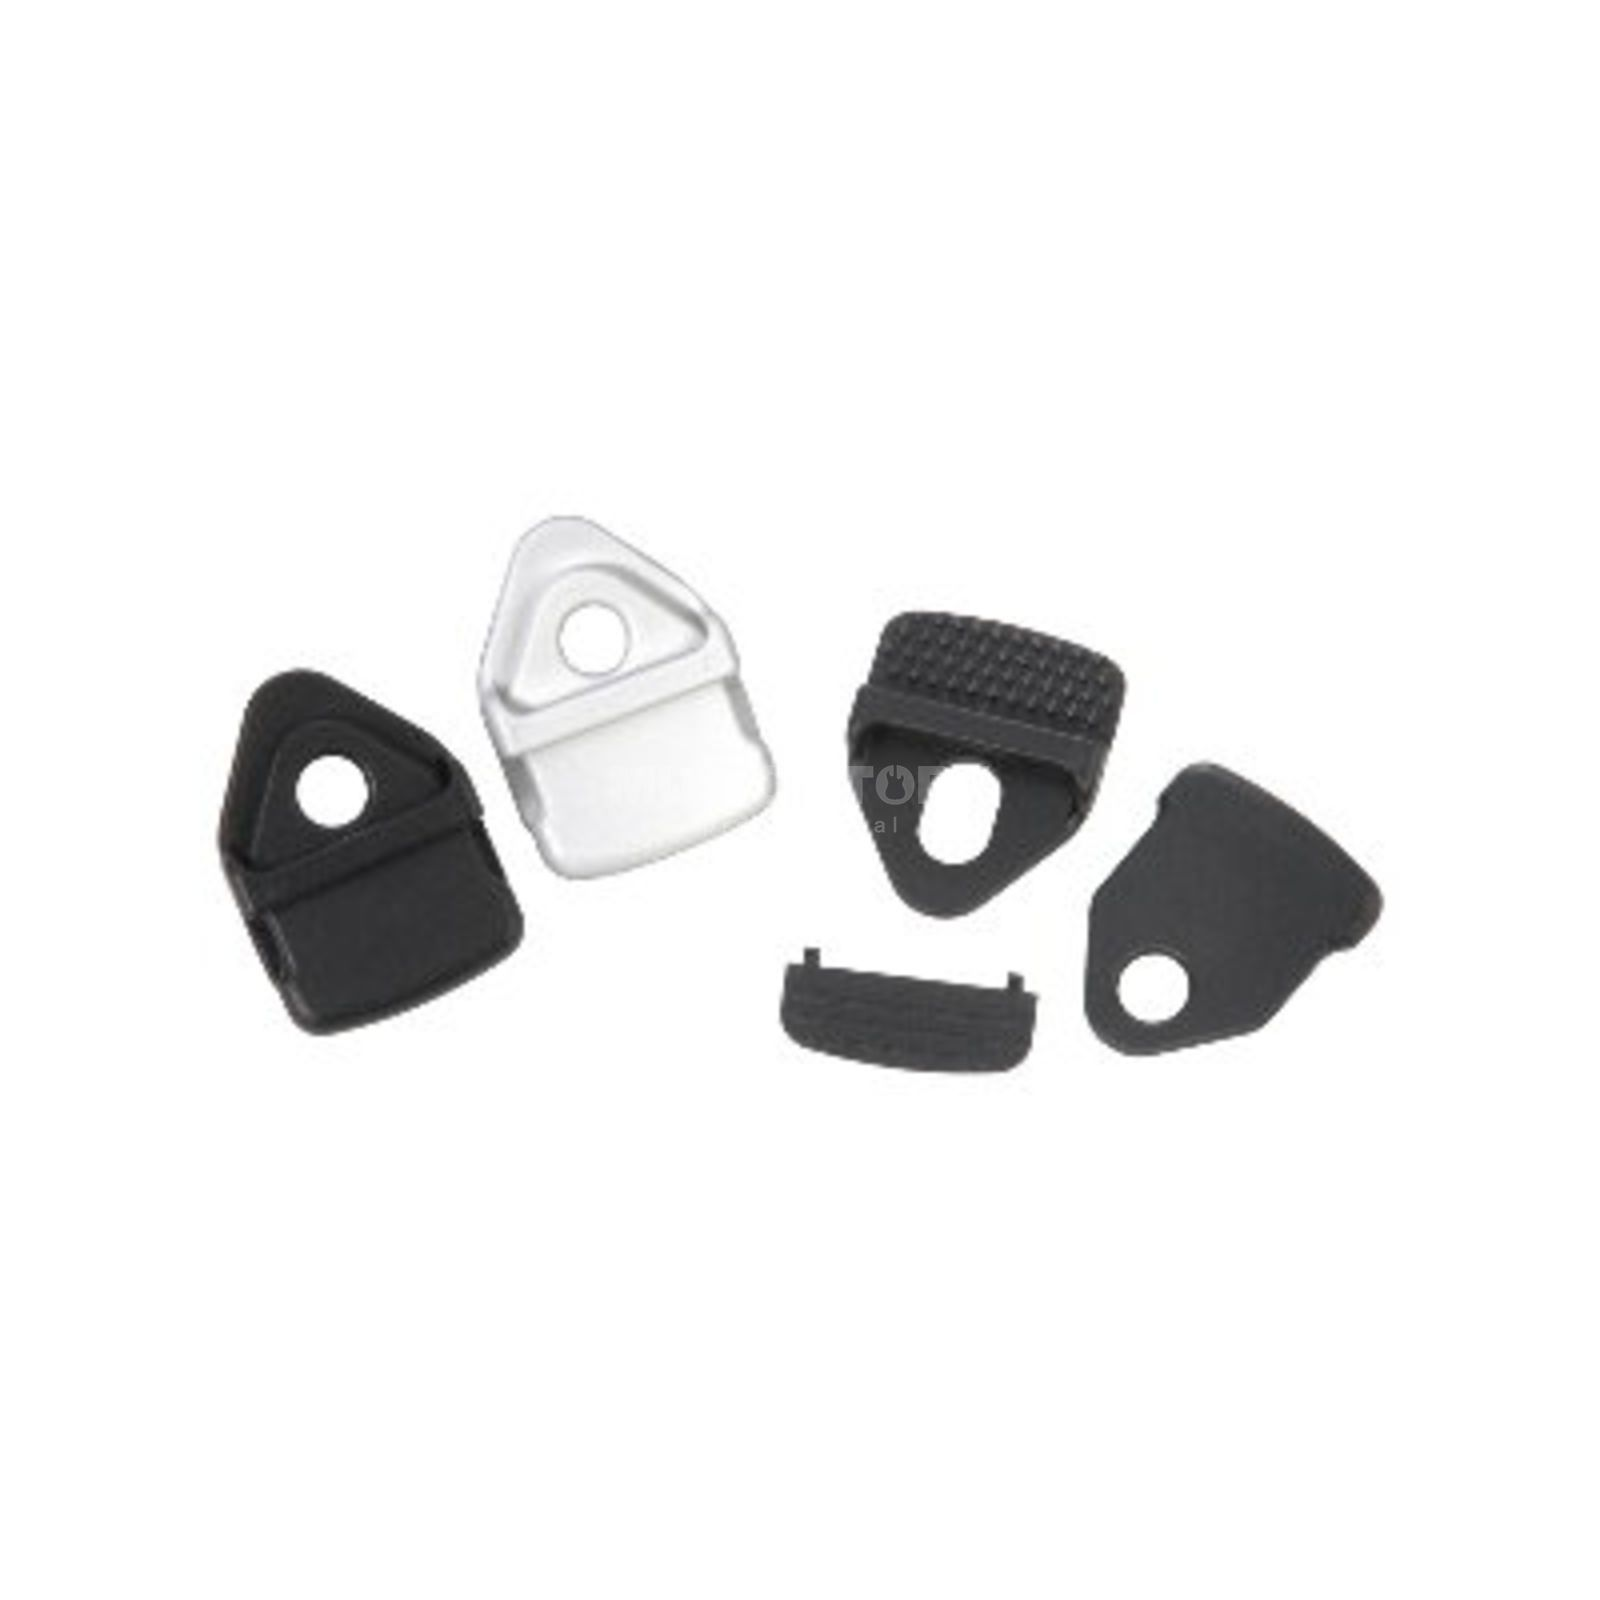 lightmaXX Spannfix ECO Clip Miniclip Black for Molton Produktbillede